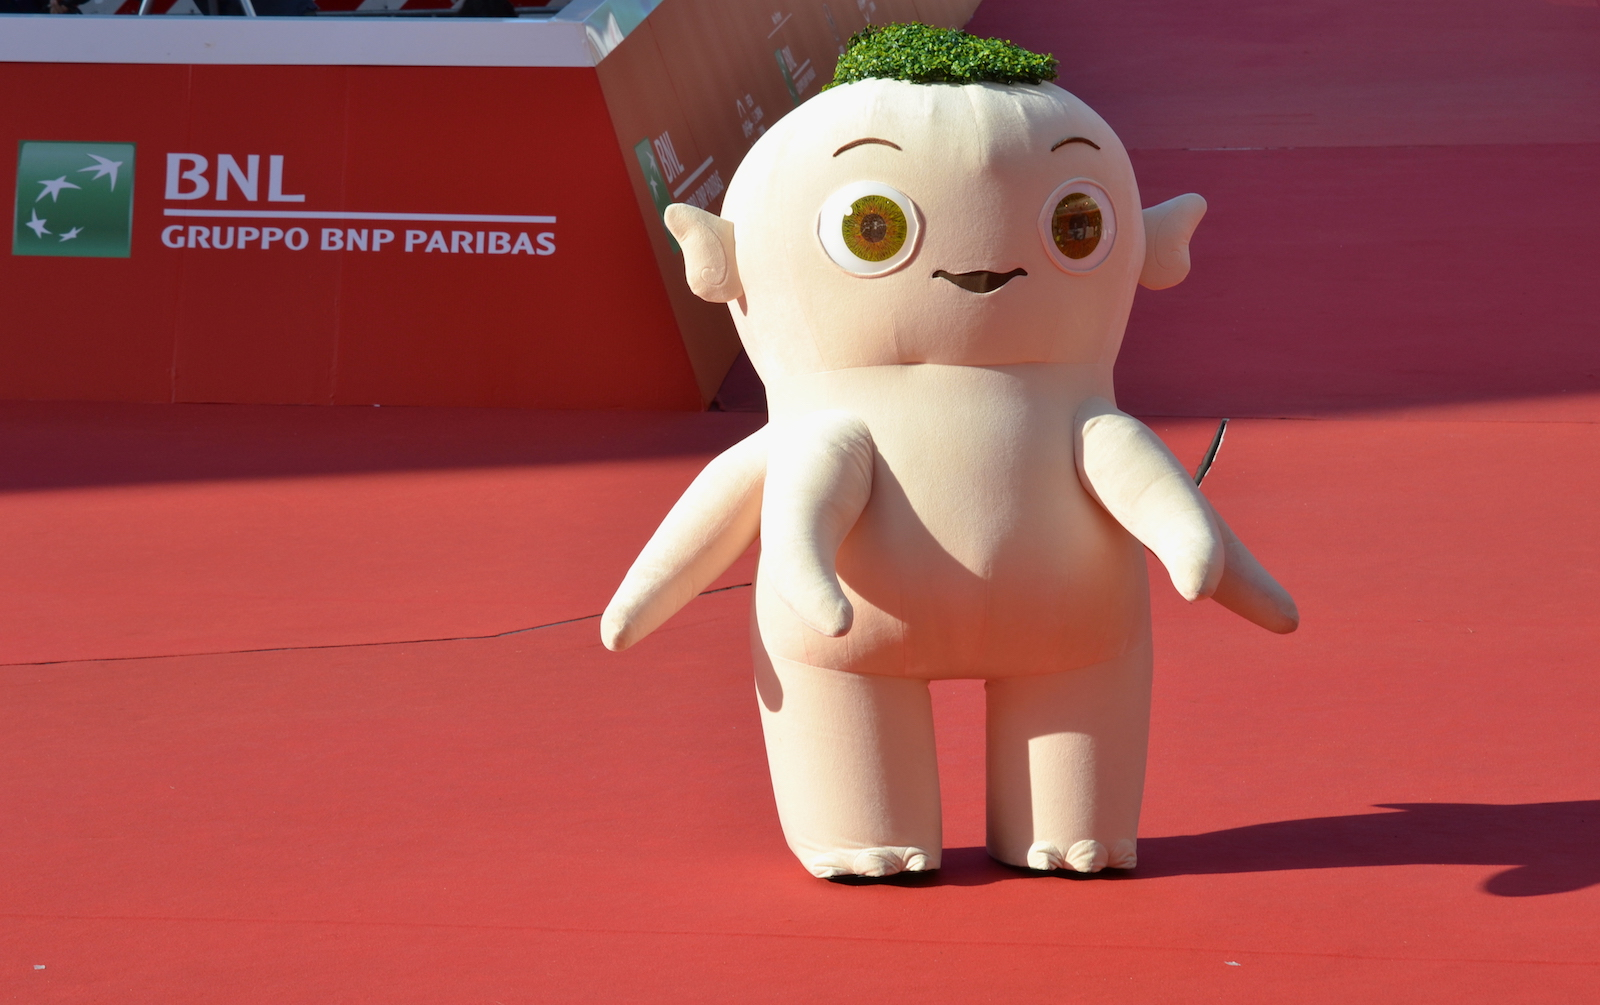 Roma 2015: il personaggio di Monster Hunt posa per i fotografi sul red carpet